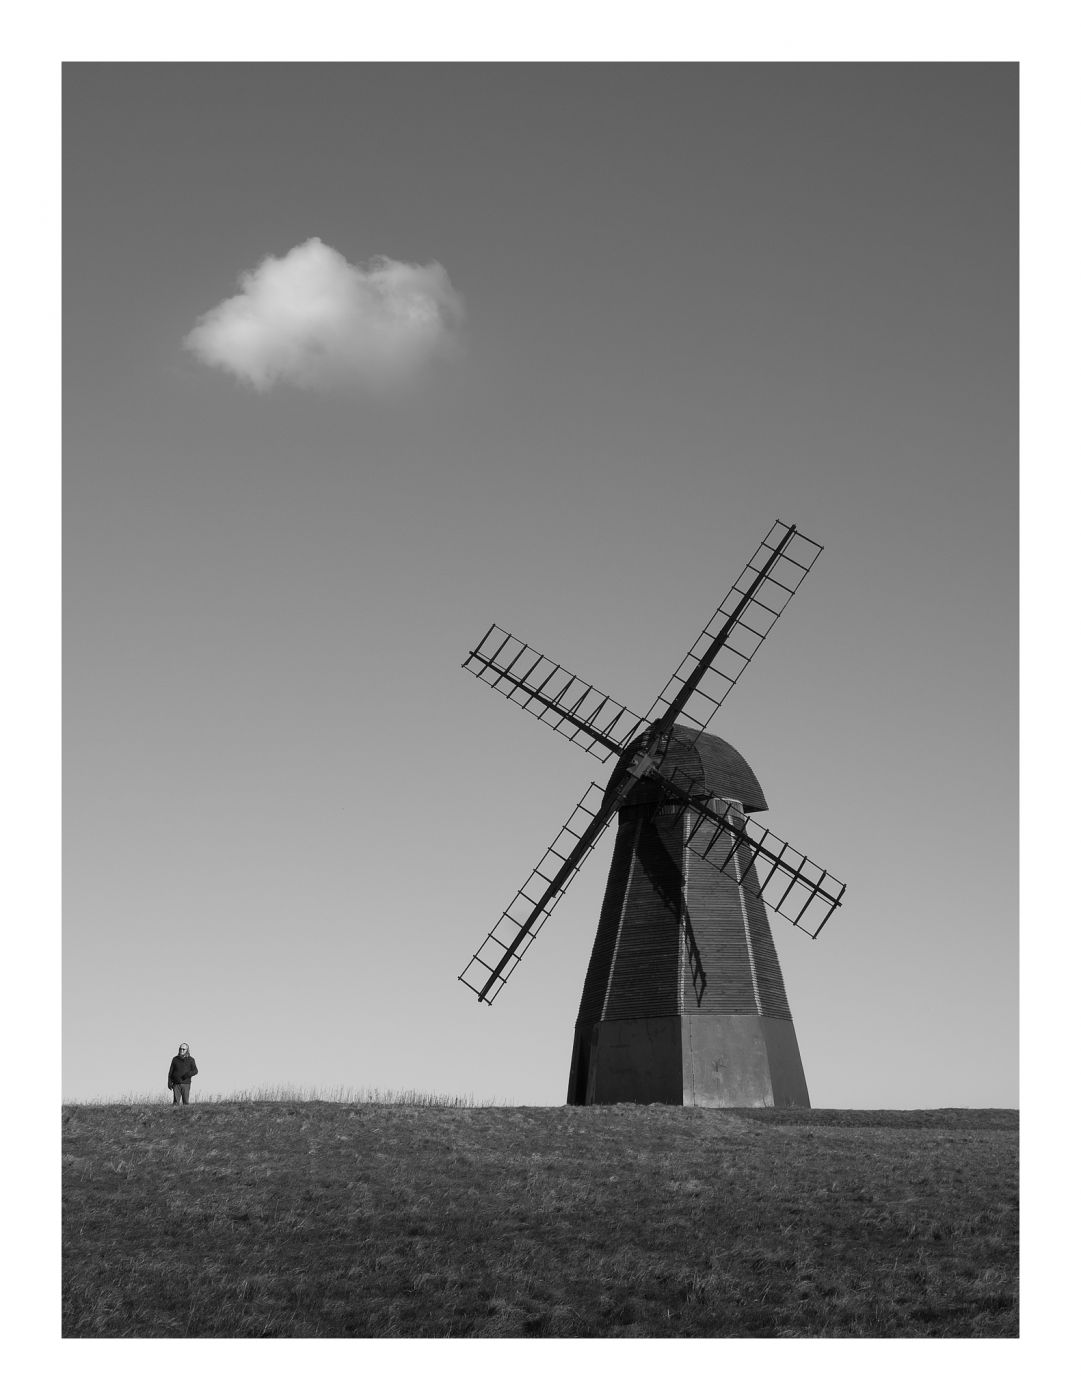 Brighton Windmill, United Kingdom